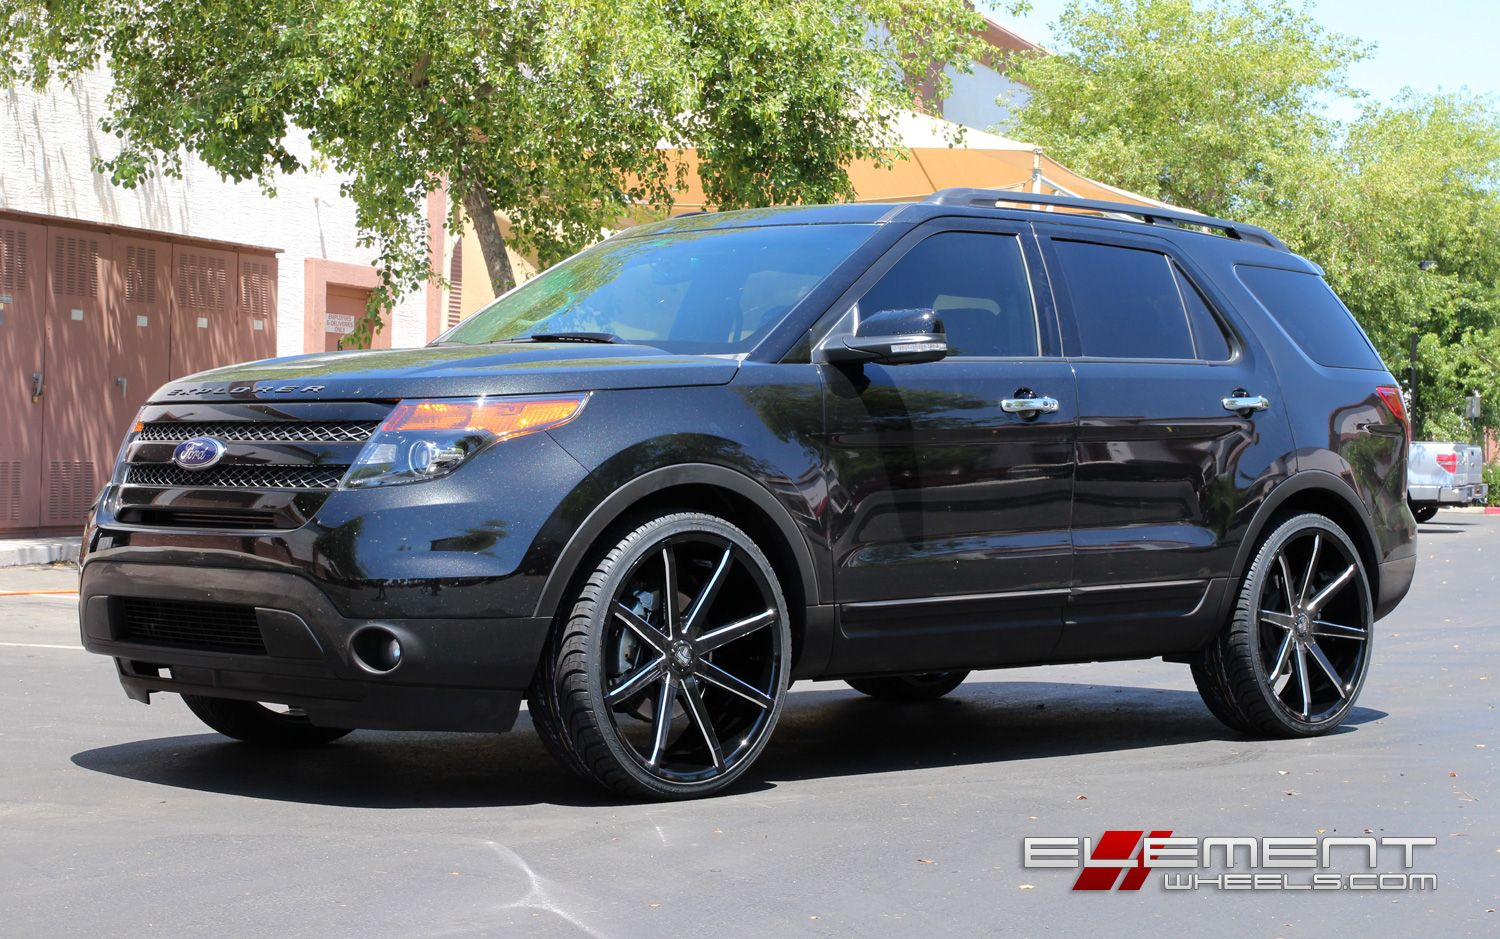 All Black Ford 2014 Explorer Sport With Images Ford Explorer